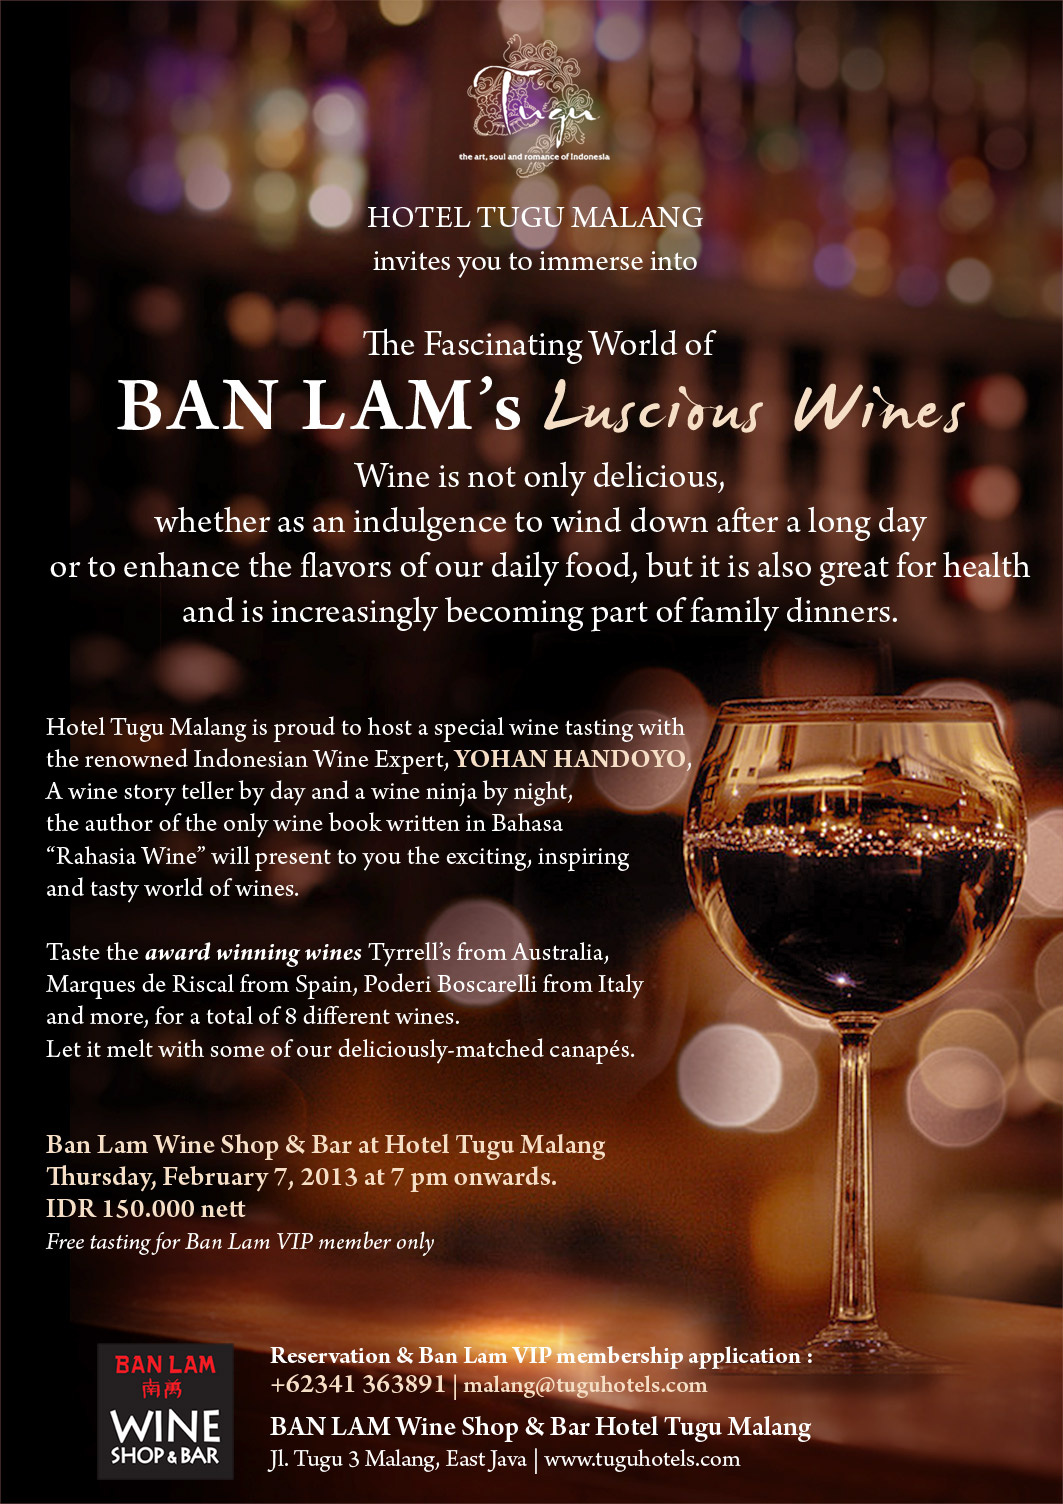 the fascinating world of ban lam's luscious wines at hotel tugu malang